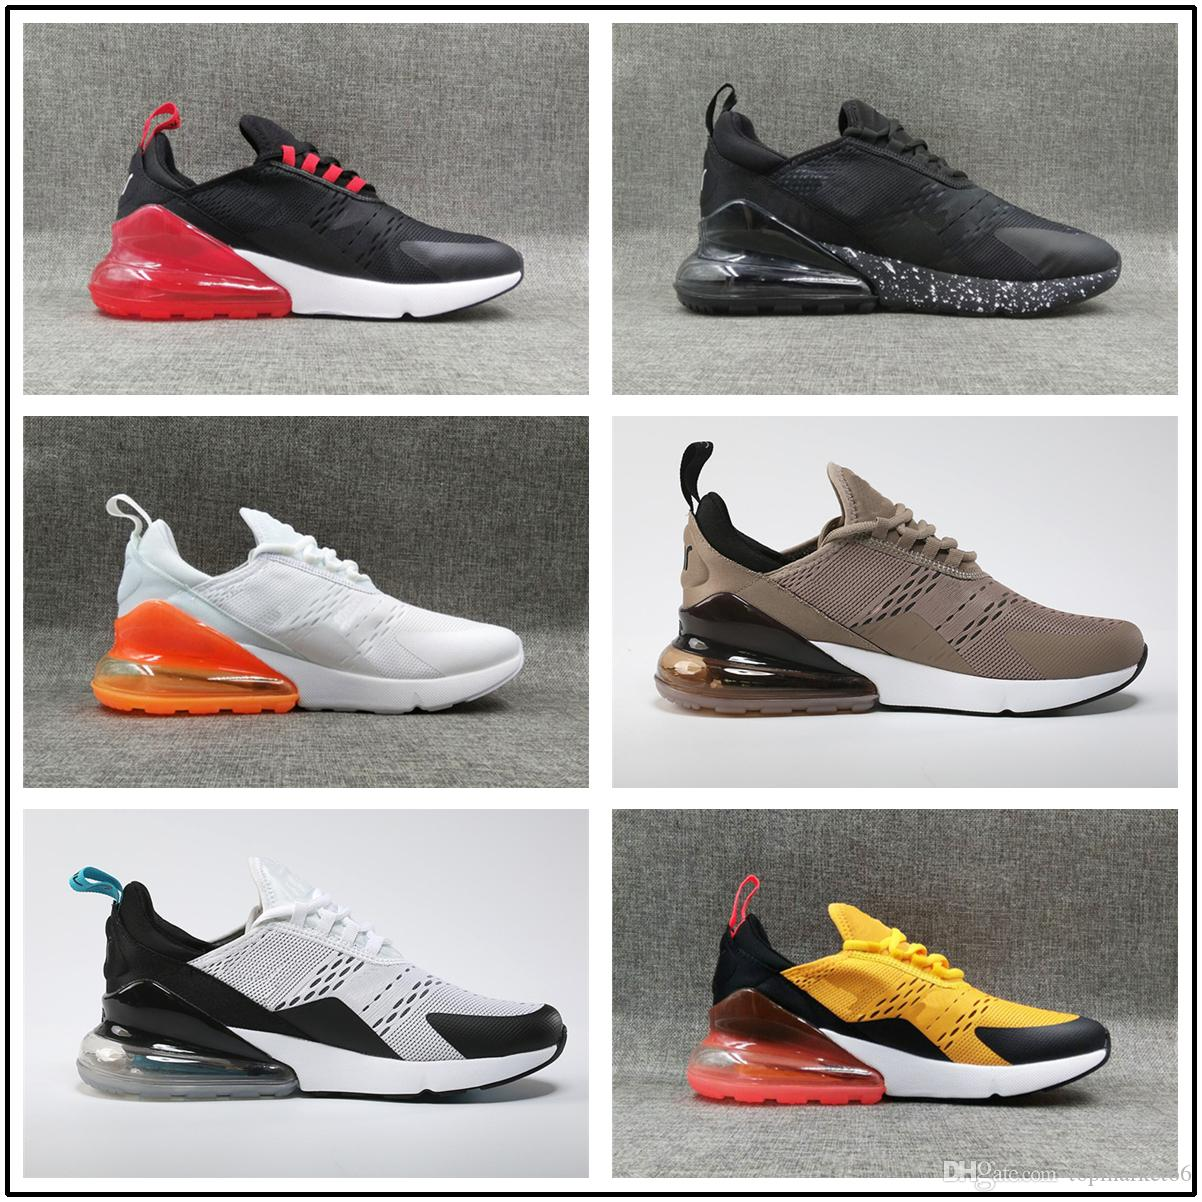 590e889ba0f1 Women s Casual Shoes Flairs Triple Pink Black Trainer Splash-ink Sports Shoe  Medium Olive Ladies 27C Sneakers Outdoor Boots 270 Shoes White Yellow  Online ...